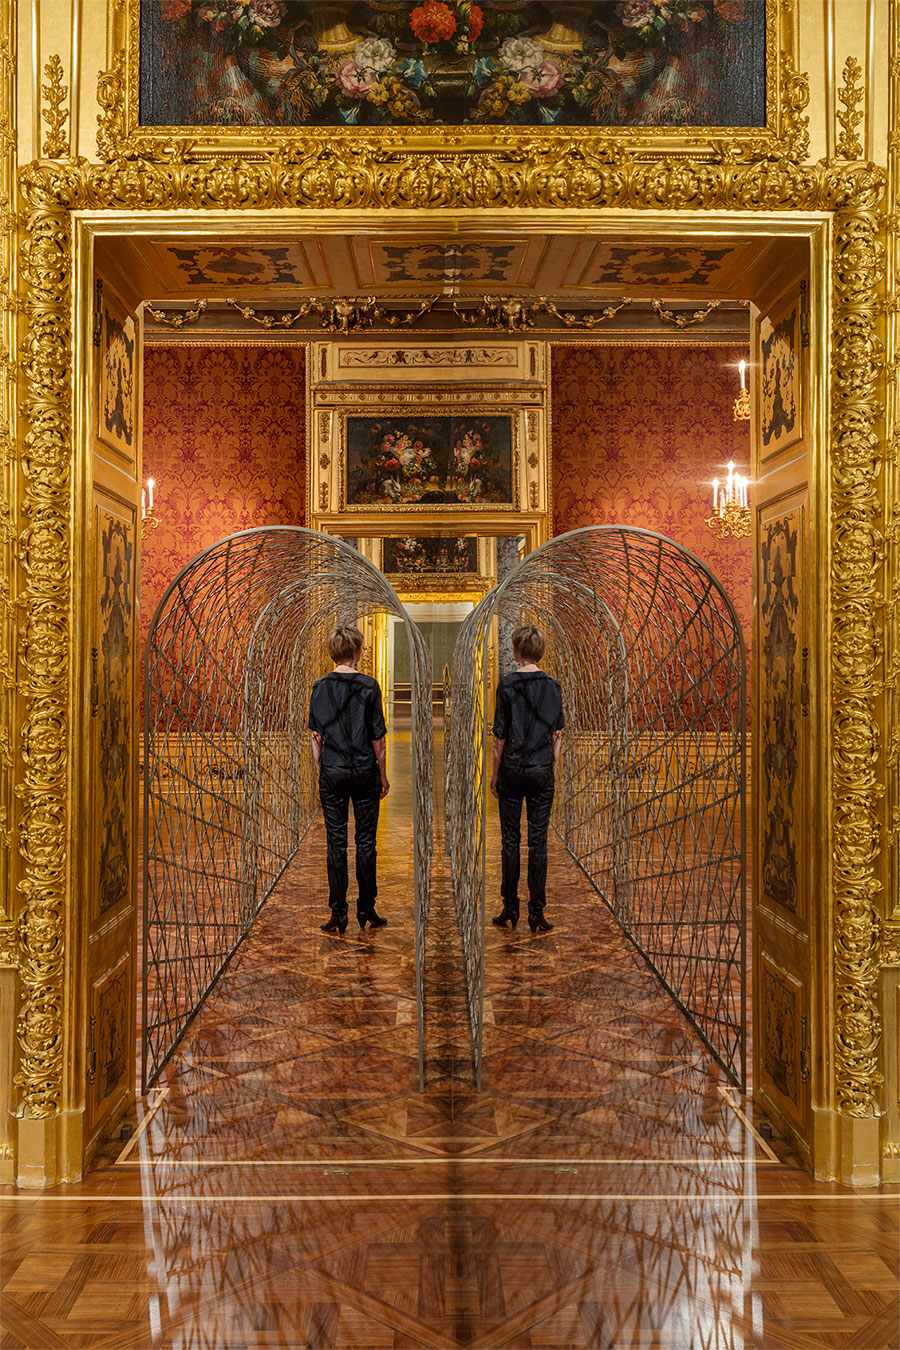 Olafur EliassonFivefold tunnel, 2000Stainless steel2,20 x 1,10 , 11 m The Winter Palace of Prince Eugene of Savoy, Vienna 2015 Photo by Anders Sune BergCourtesy of Thyssen-Bornemisza Art Contemporary Collection, Vienna © Olafur Eliasson.